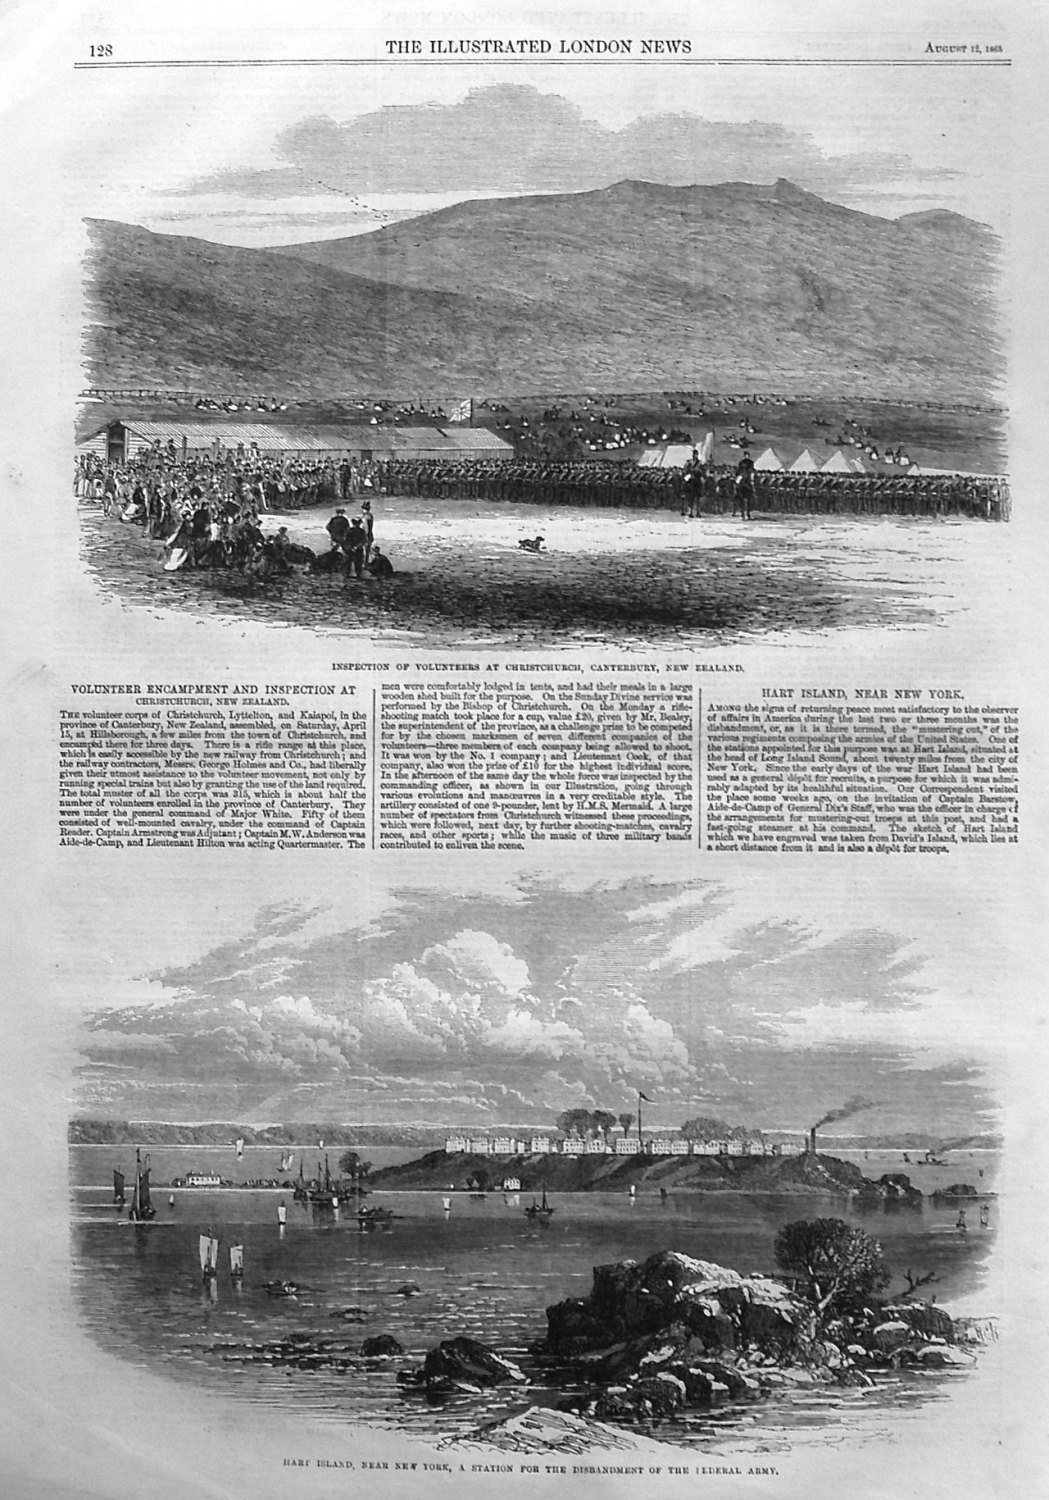 Volunteer Encampment and Inspection at Christchurch, New Zealand. 1865